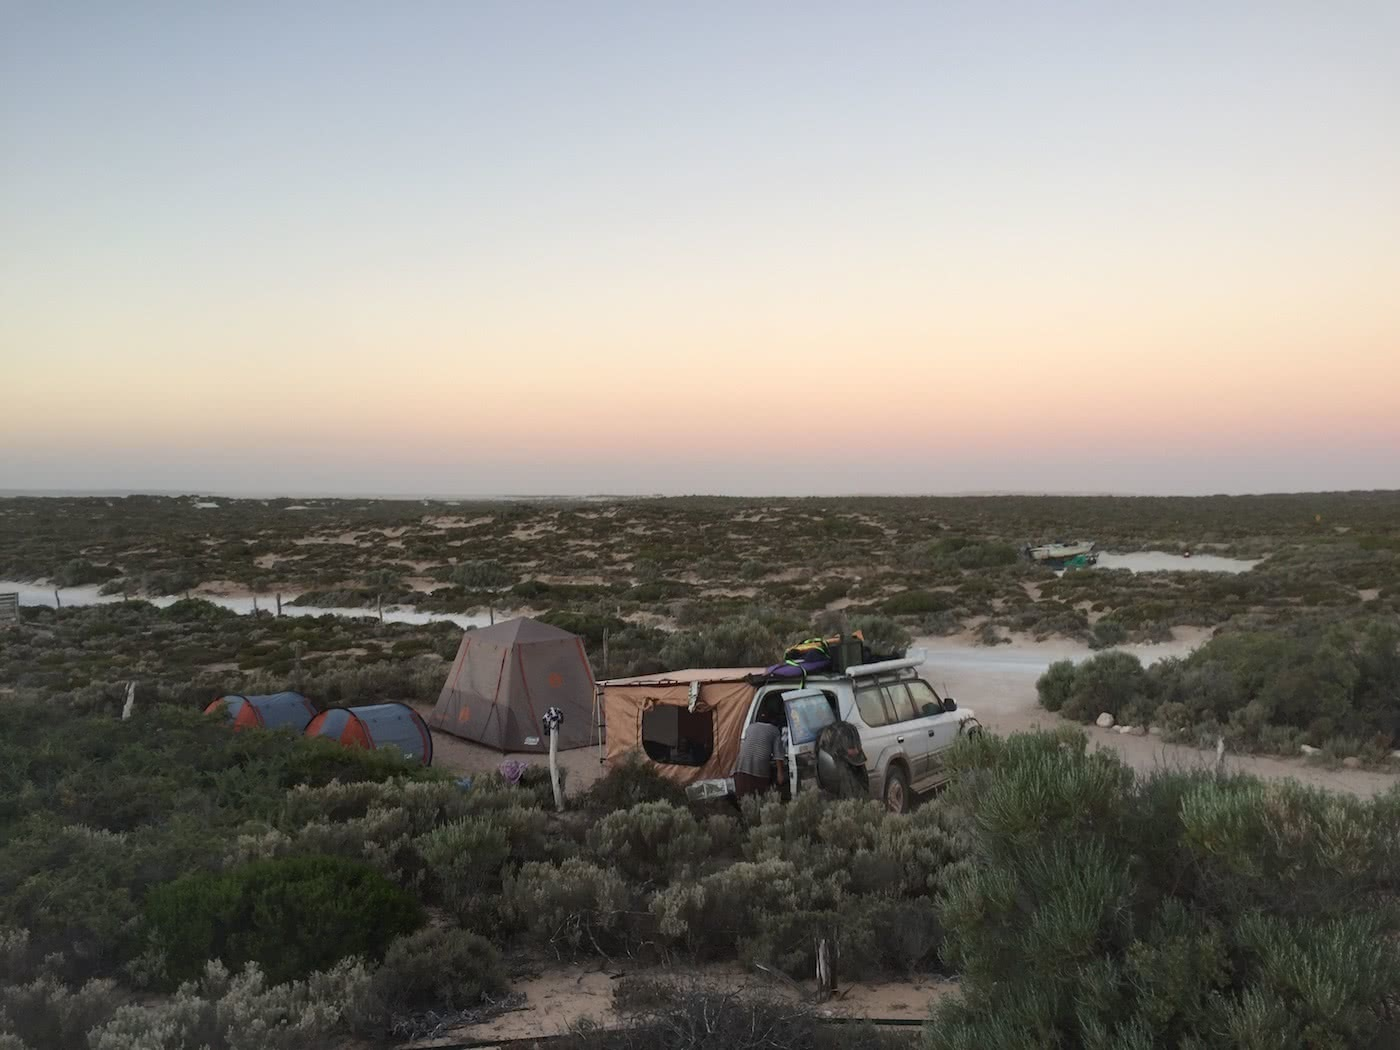 Highlights From Crossing The Nullarbor Plain Ashlee Kehoe-Sporton 4WD, camping, sunset, Cactus beach